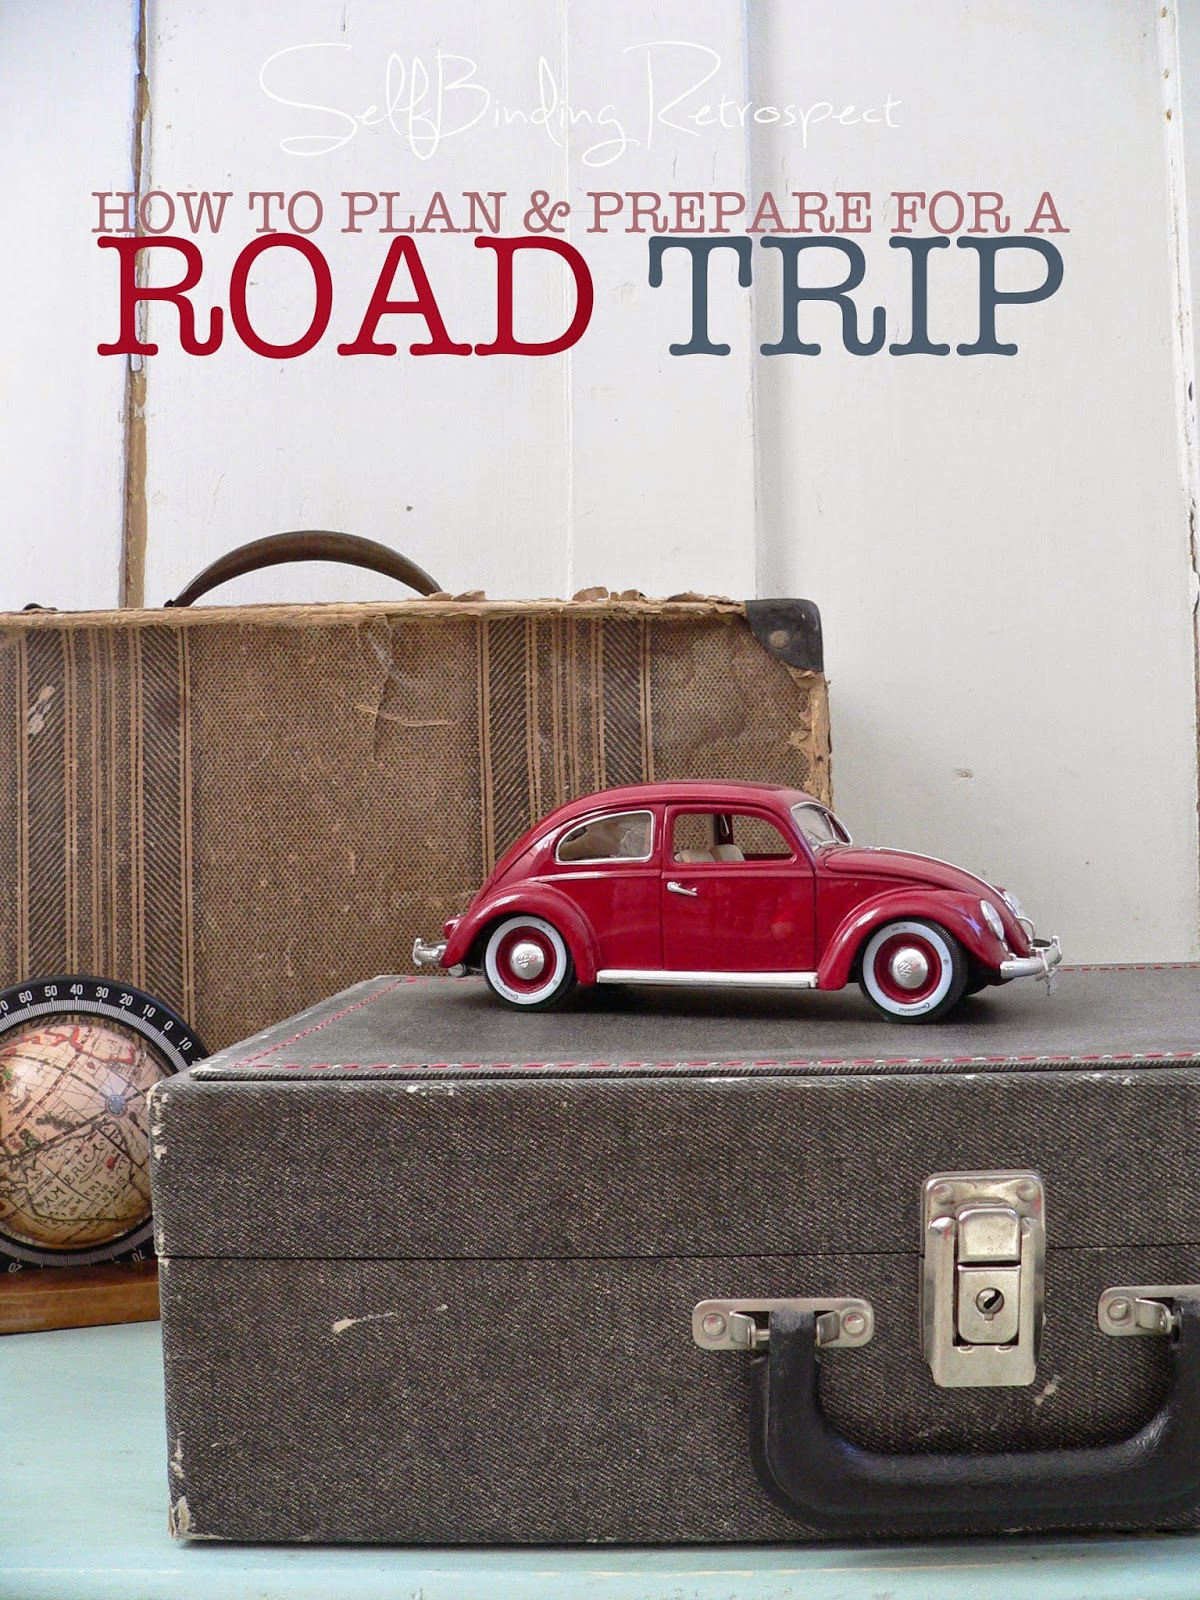 How to plan and prepare for a road trip